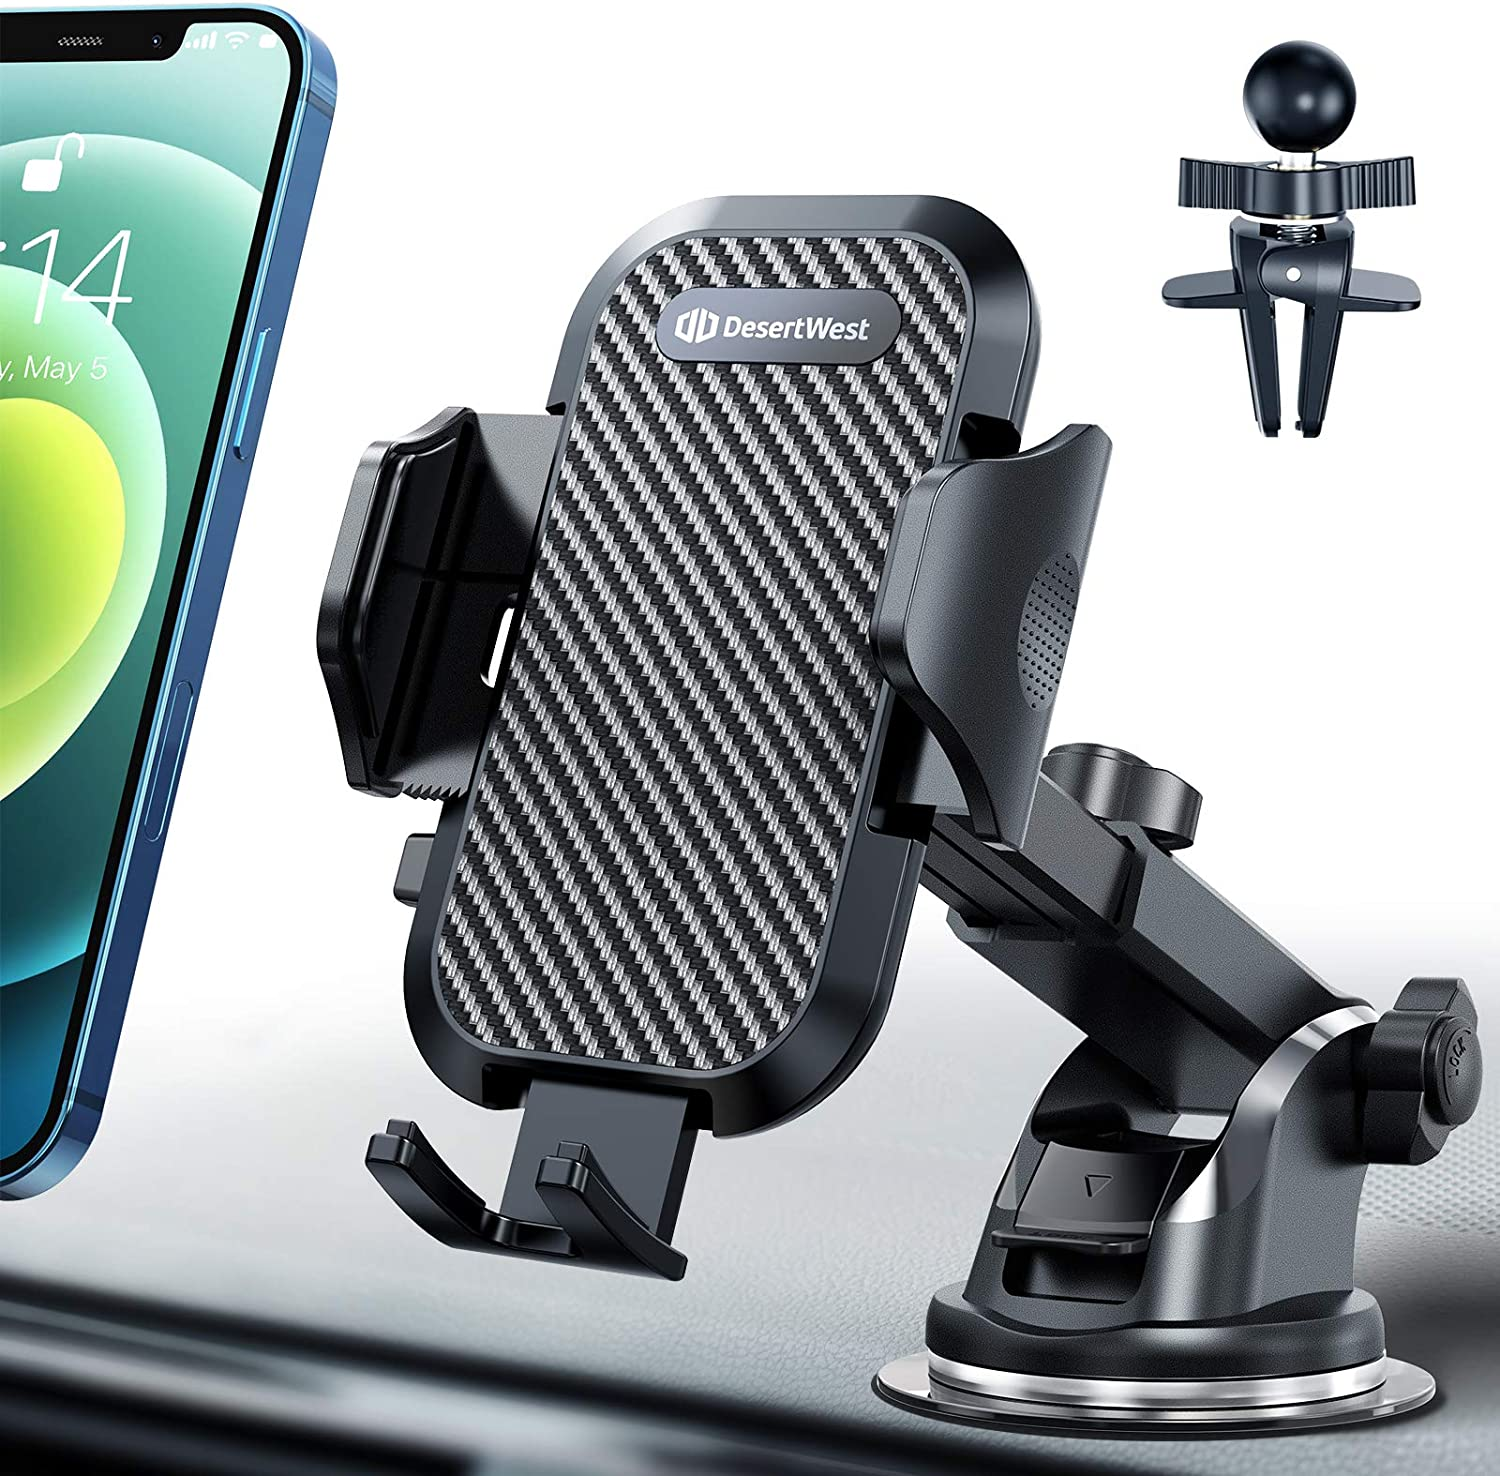 Universal Car Phone Mount Car Phone Holder for Car Dashboard Windshield Air Vent Long Arm Strong Suction Cell Phone Car Mount Fit with iPhone SE 11 Pro X XS Max XR Galaxy S20 All Phones